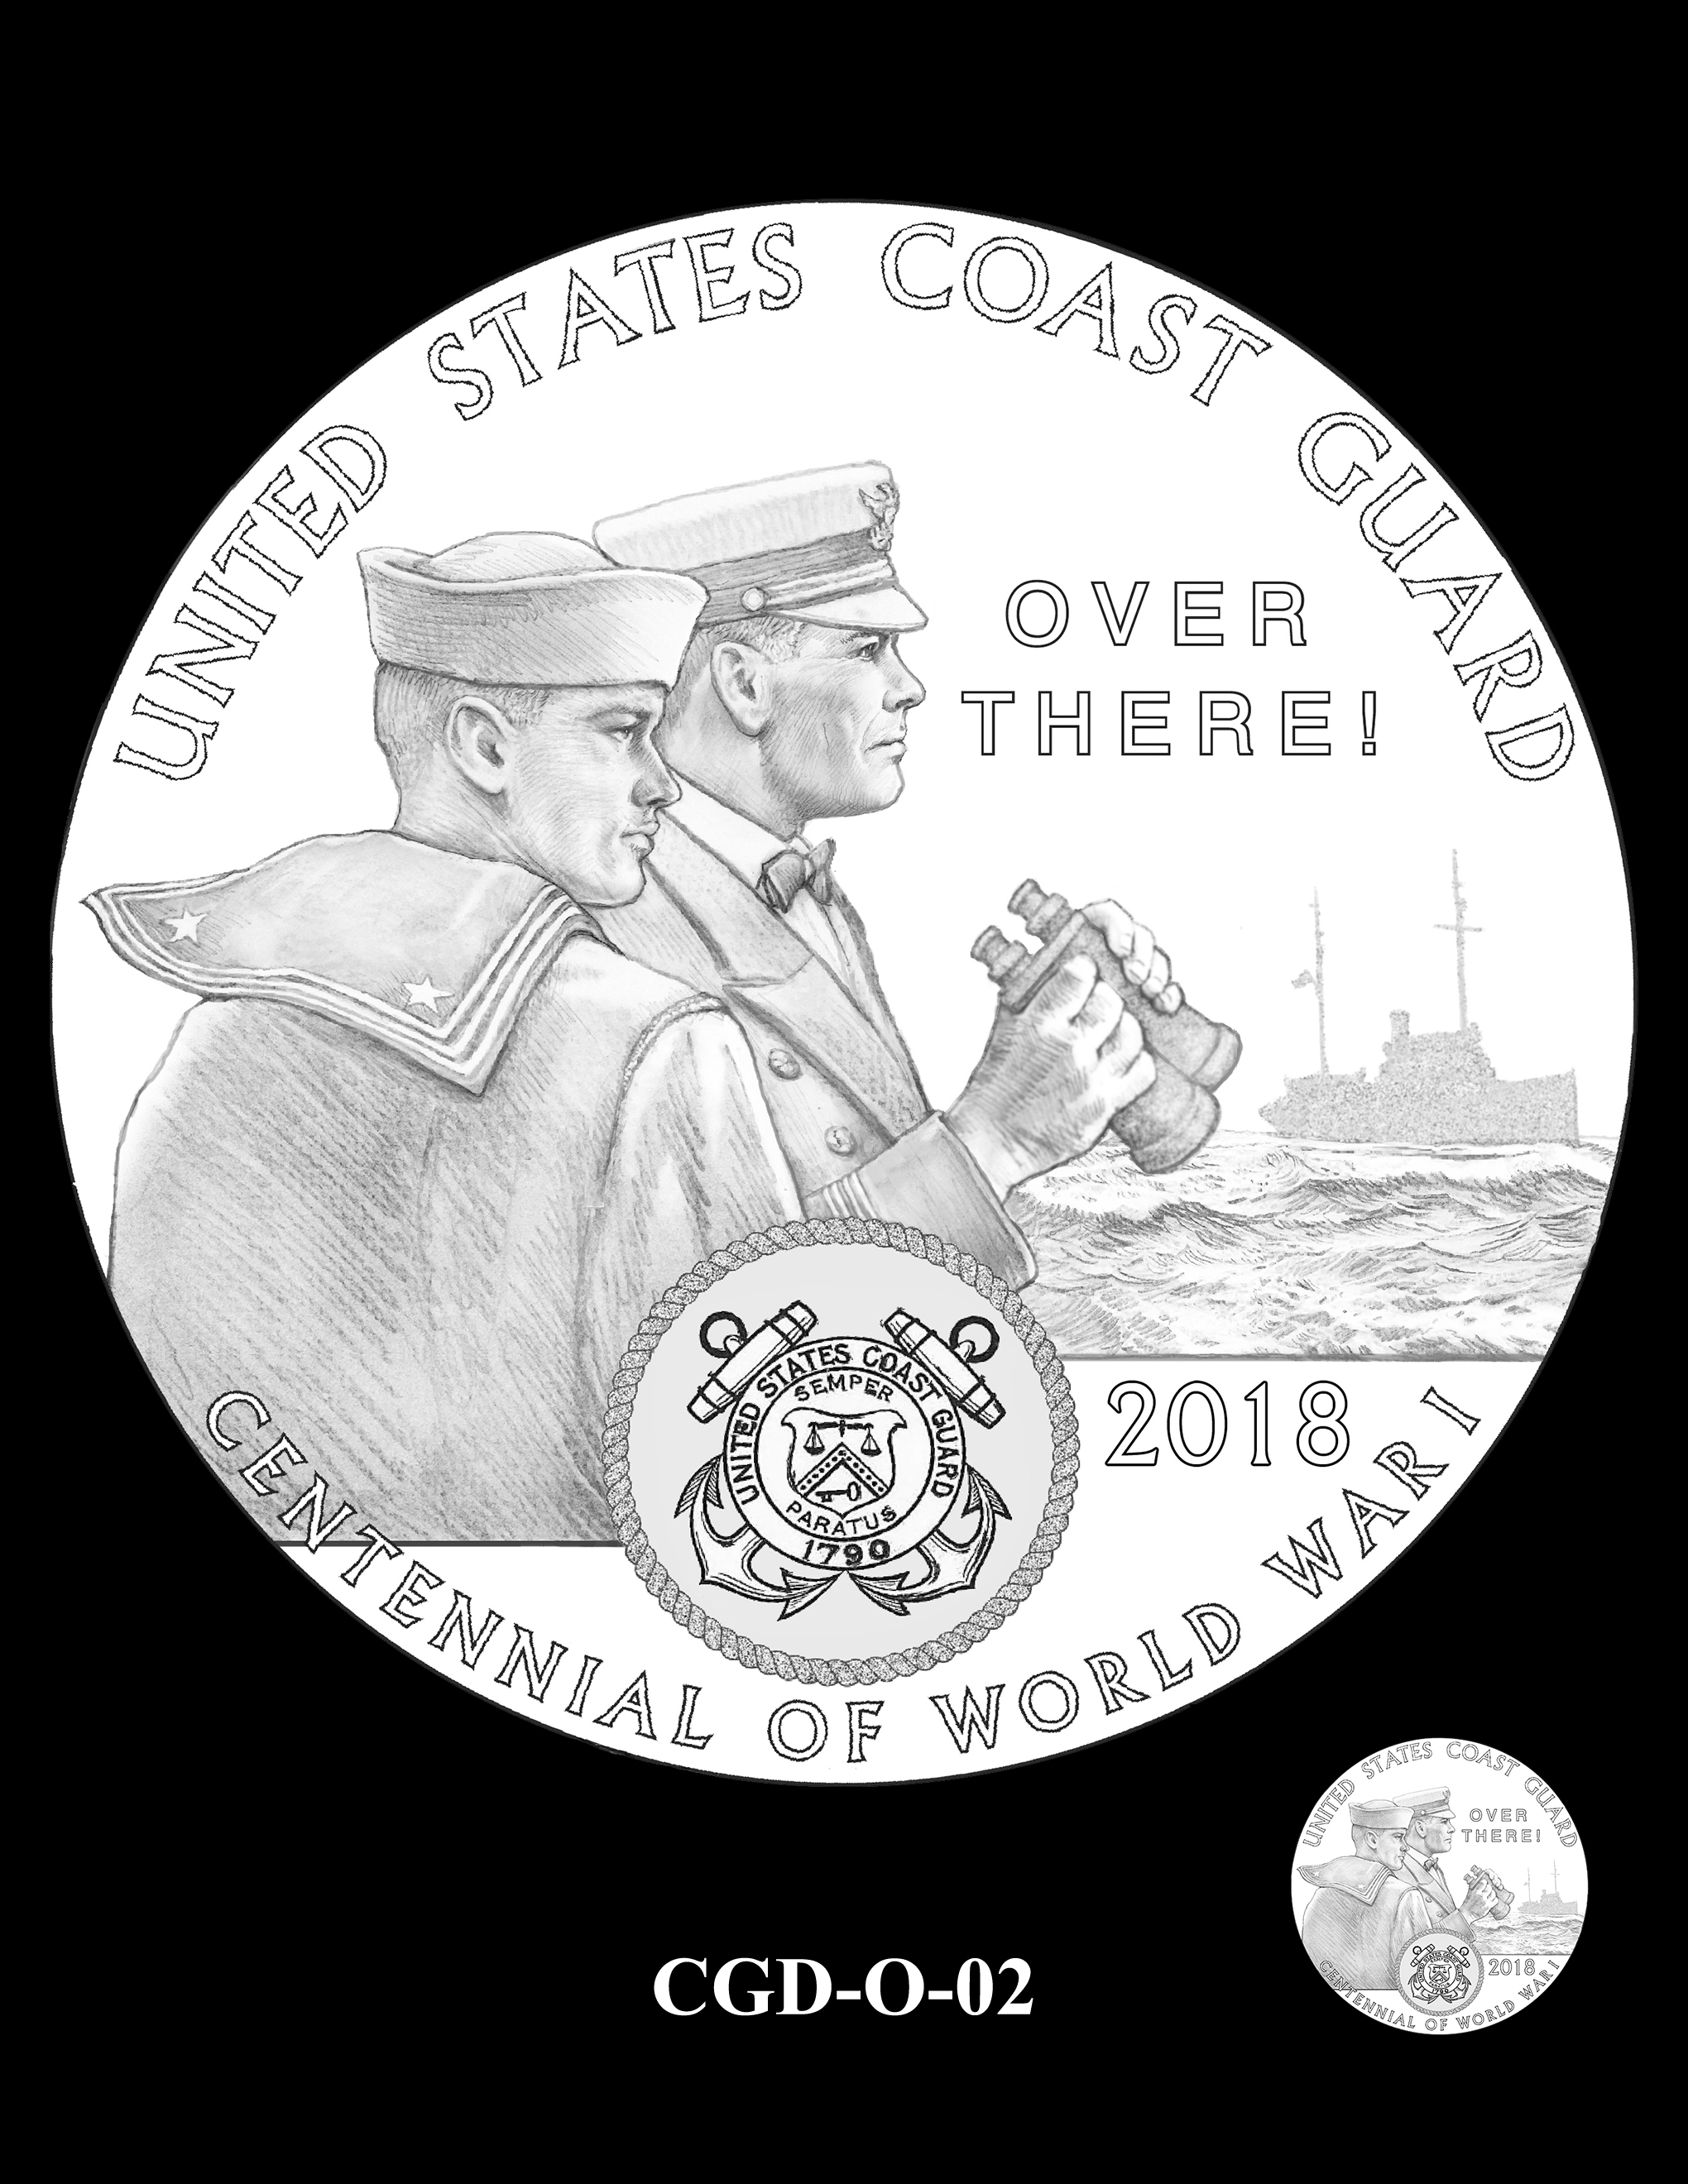 P1a-CGD-O-02 -- 2018-World War I Silver Medals - Coast Guard